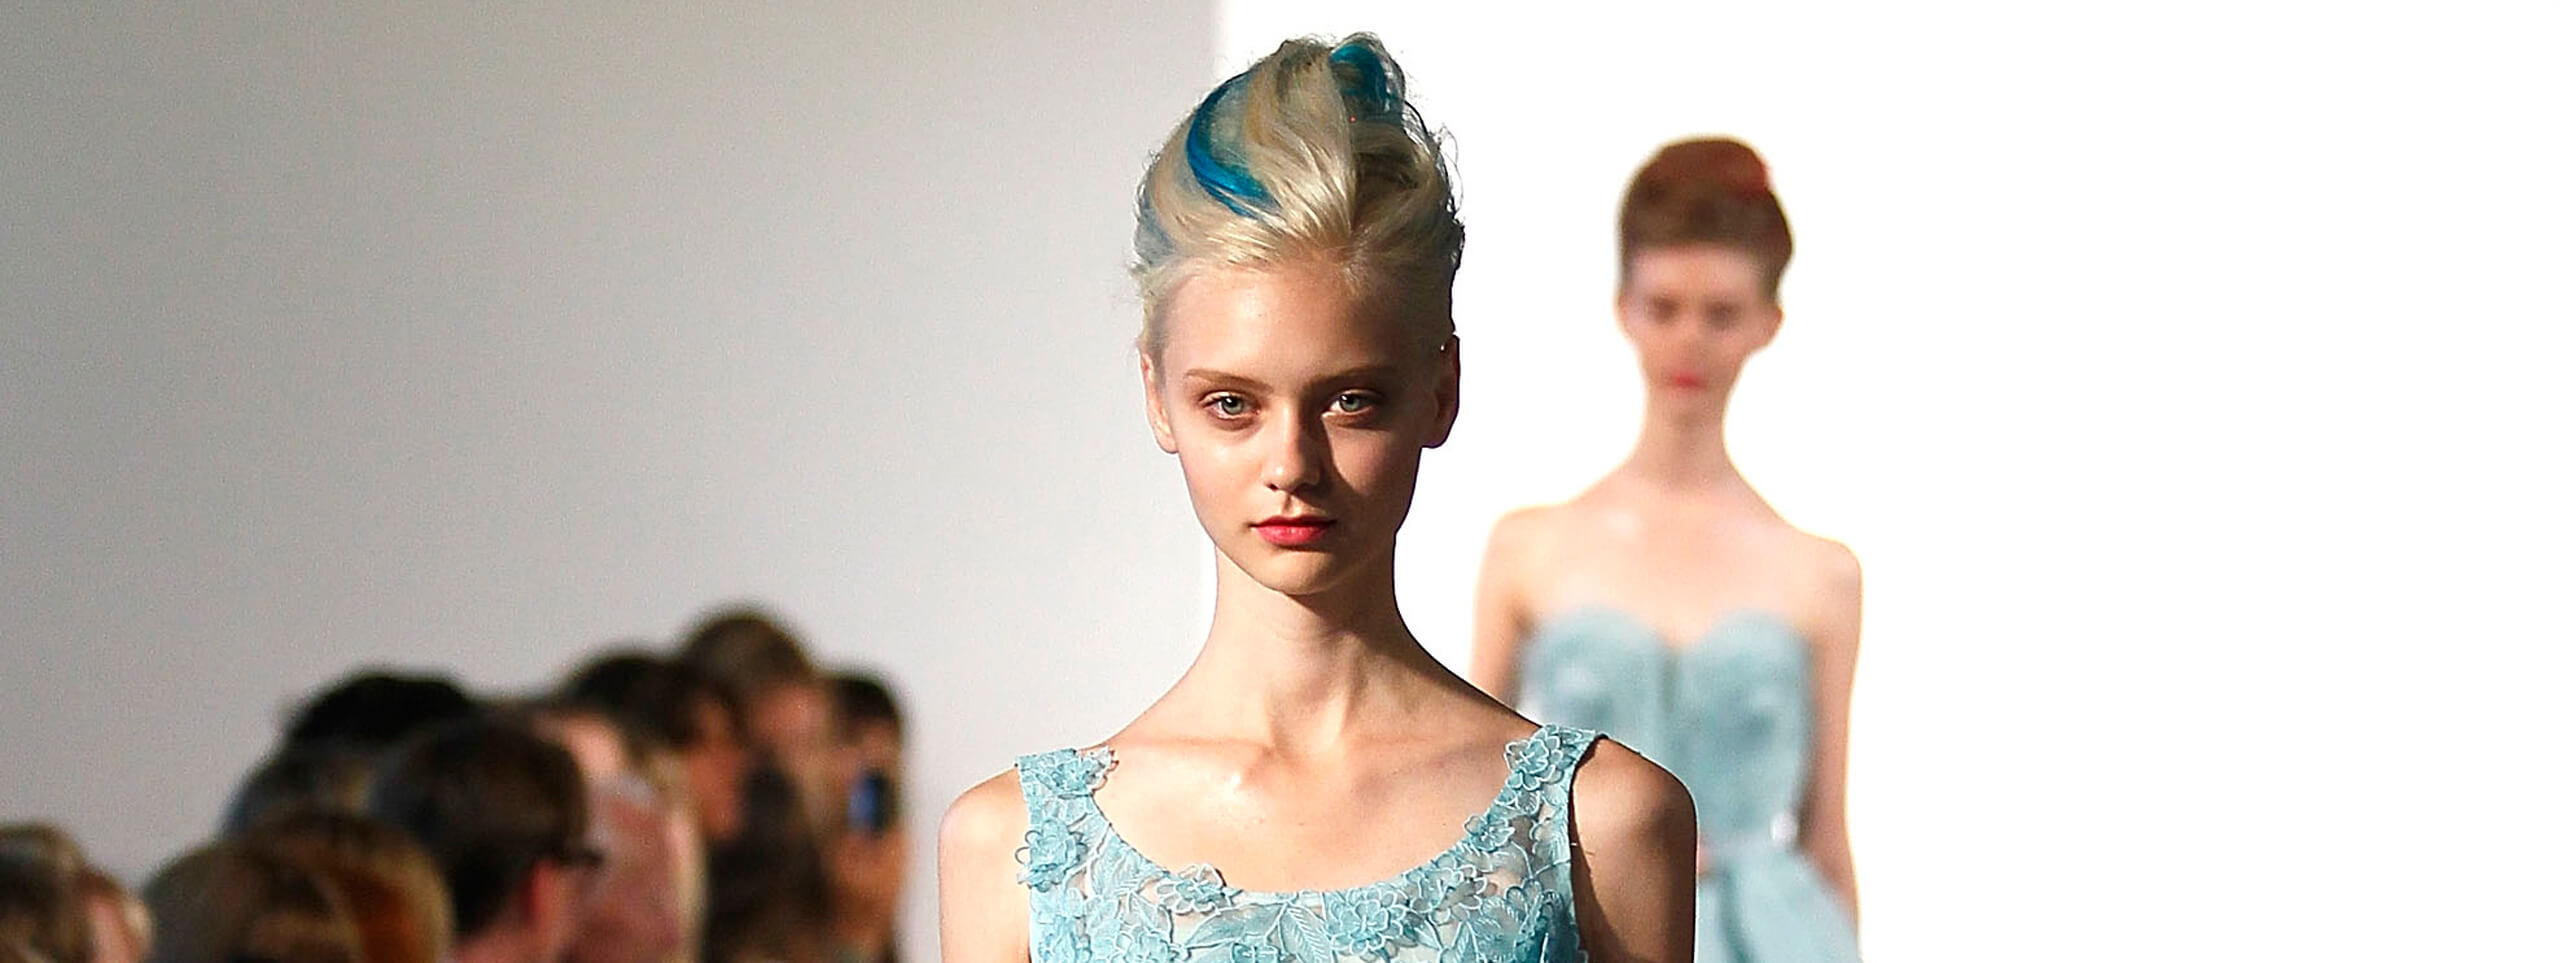 Model with a streaked hairstyle on the runway